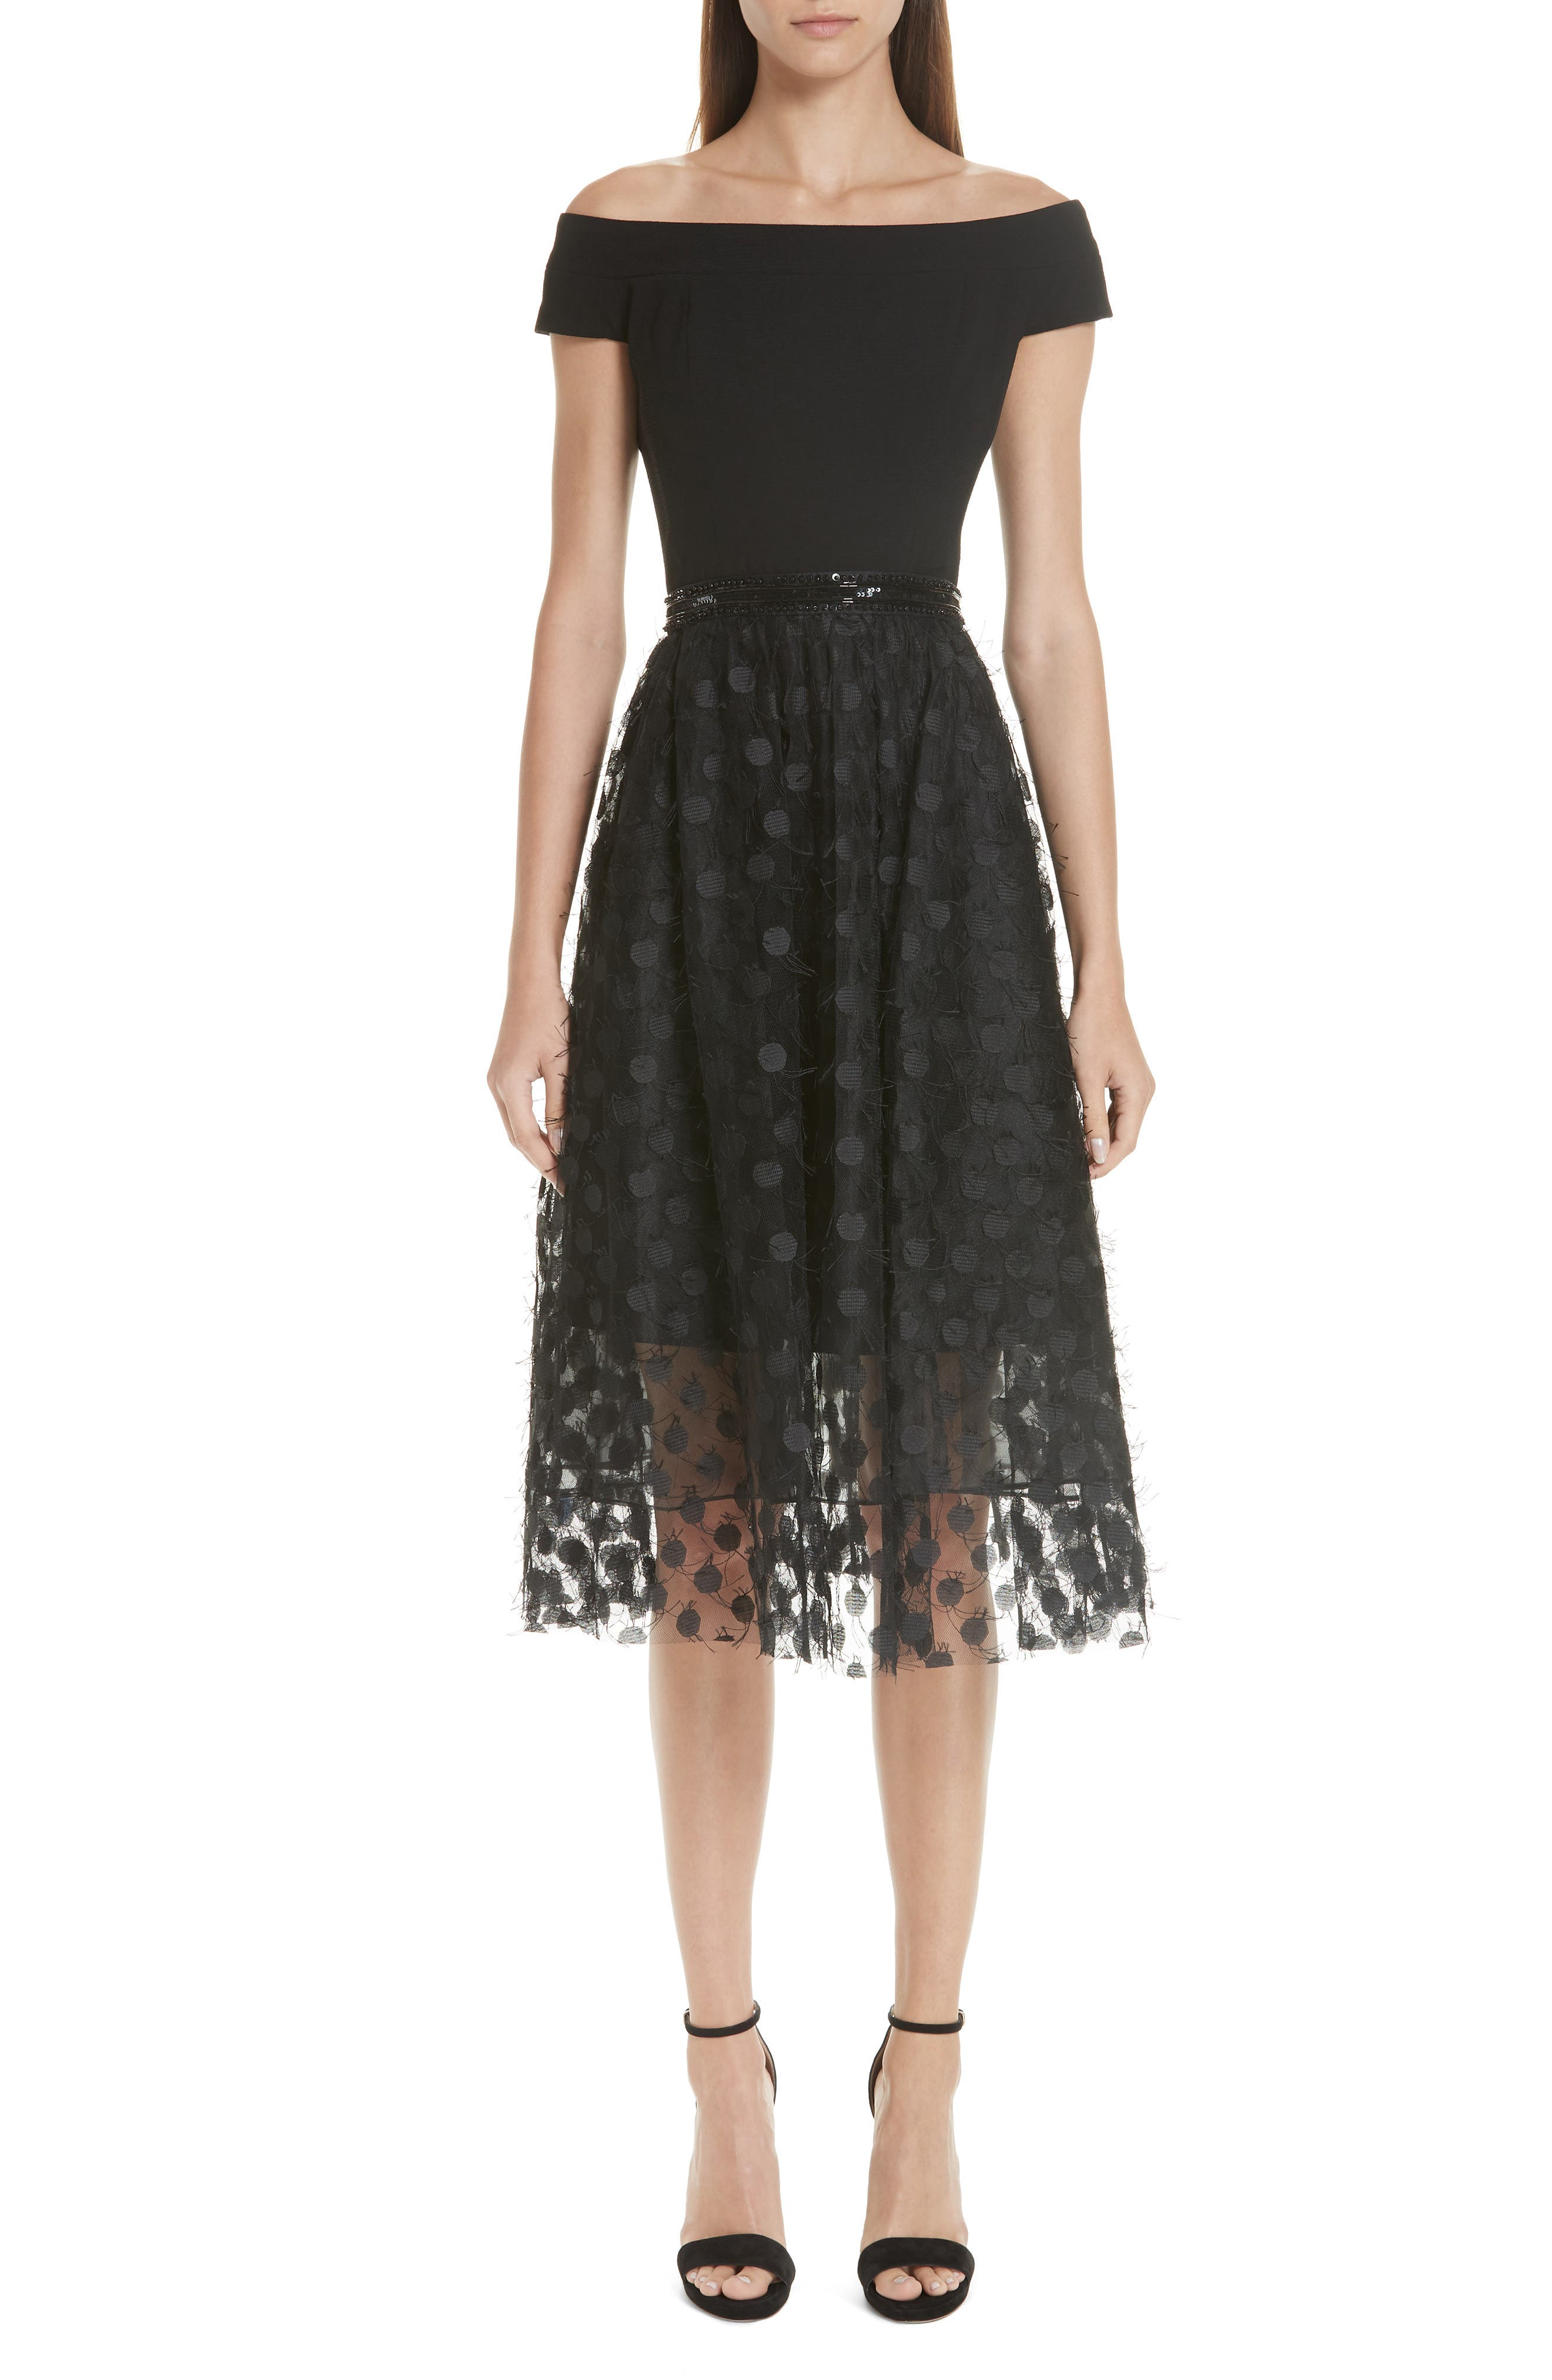 Dress for Women, Evening Cocktail Party On Sale, Black, Cotton, 2017, 10 12 Valentino